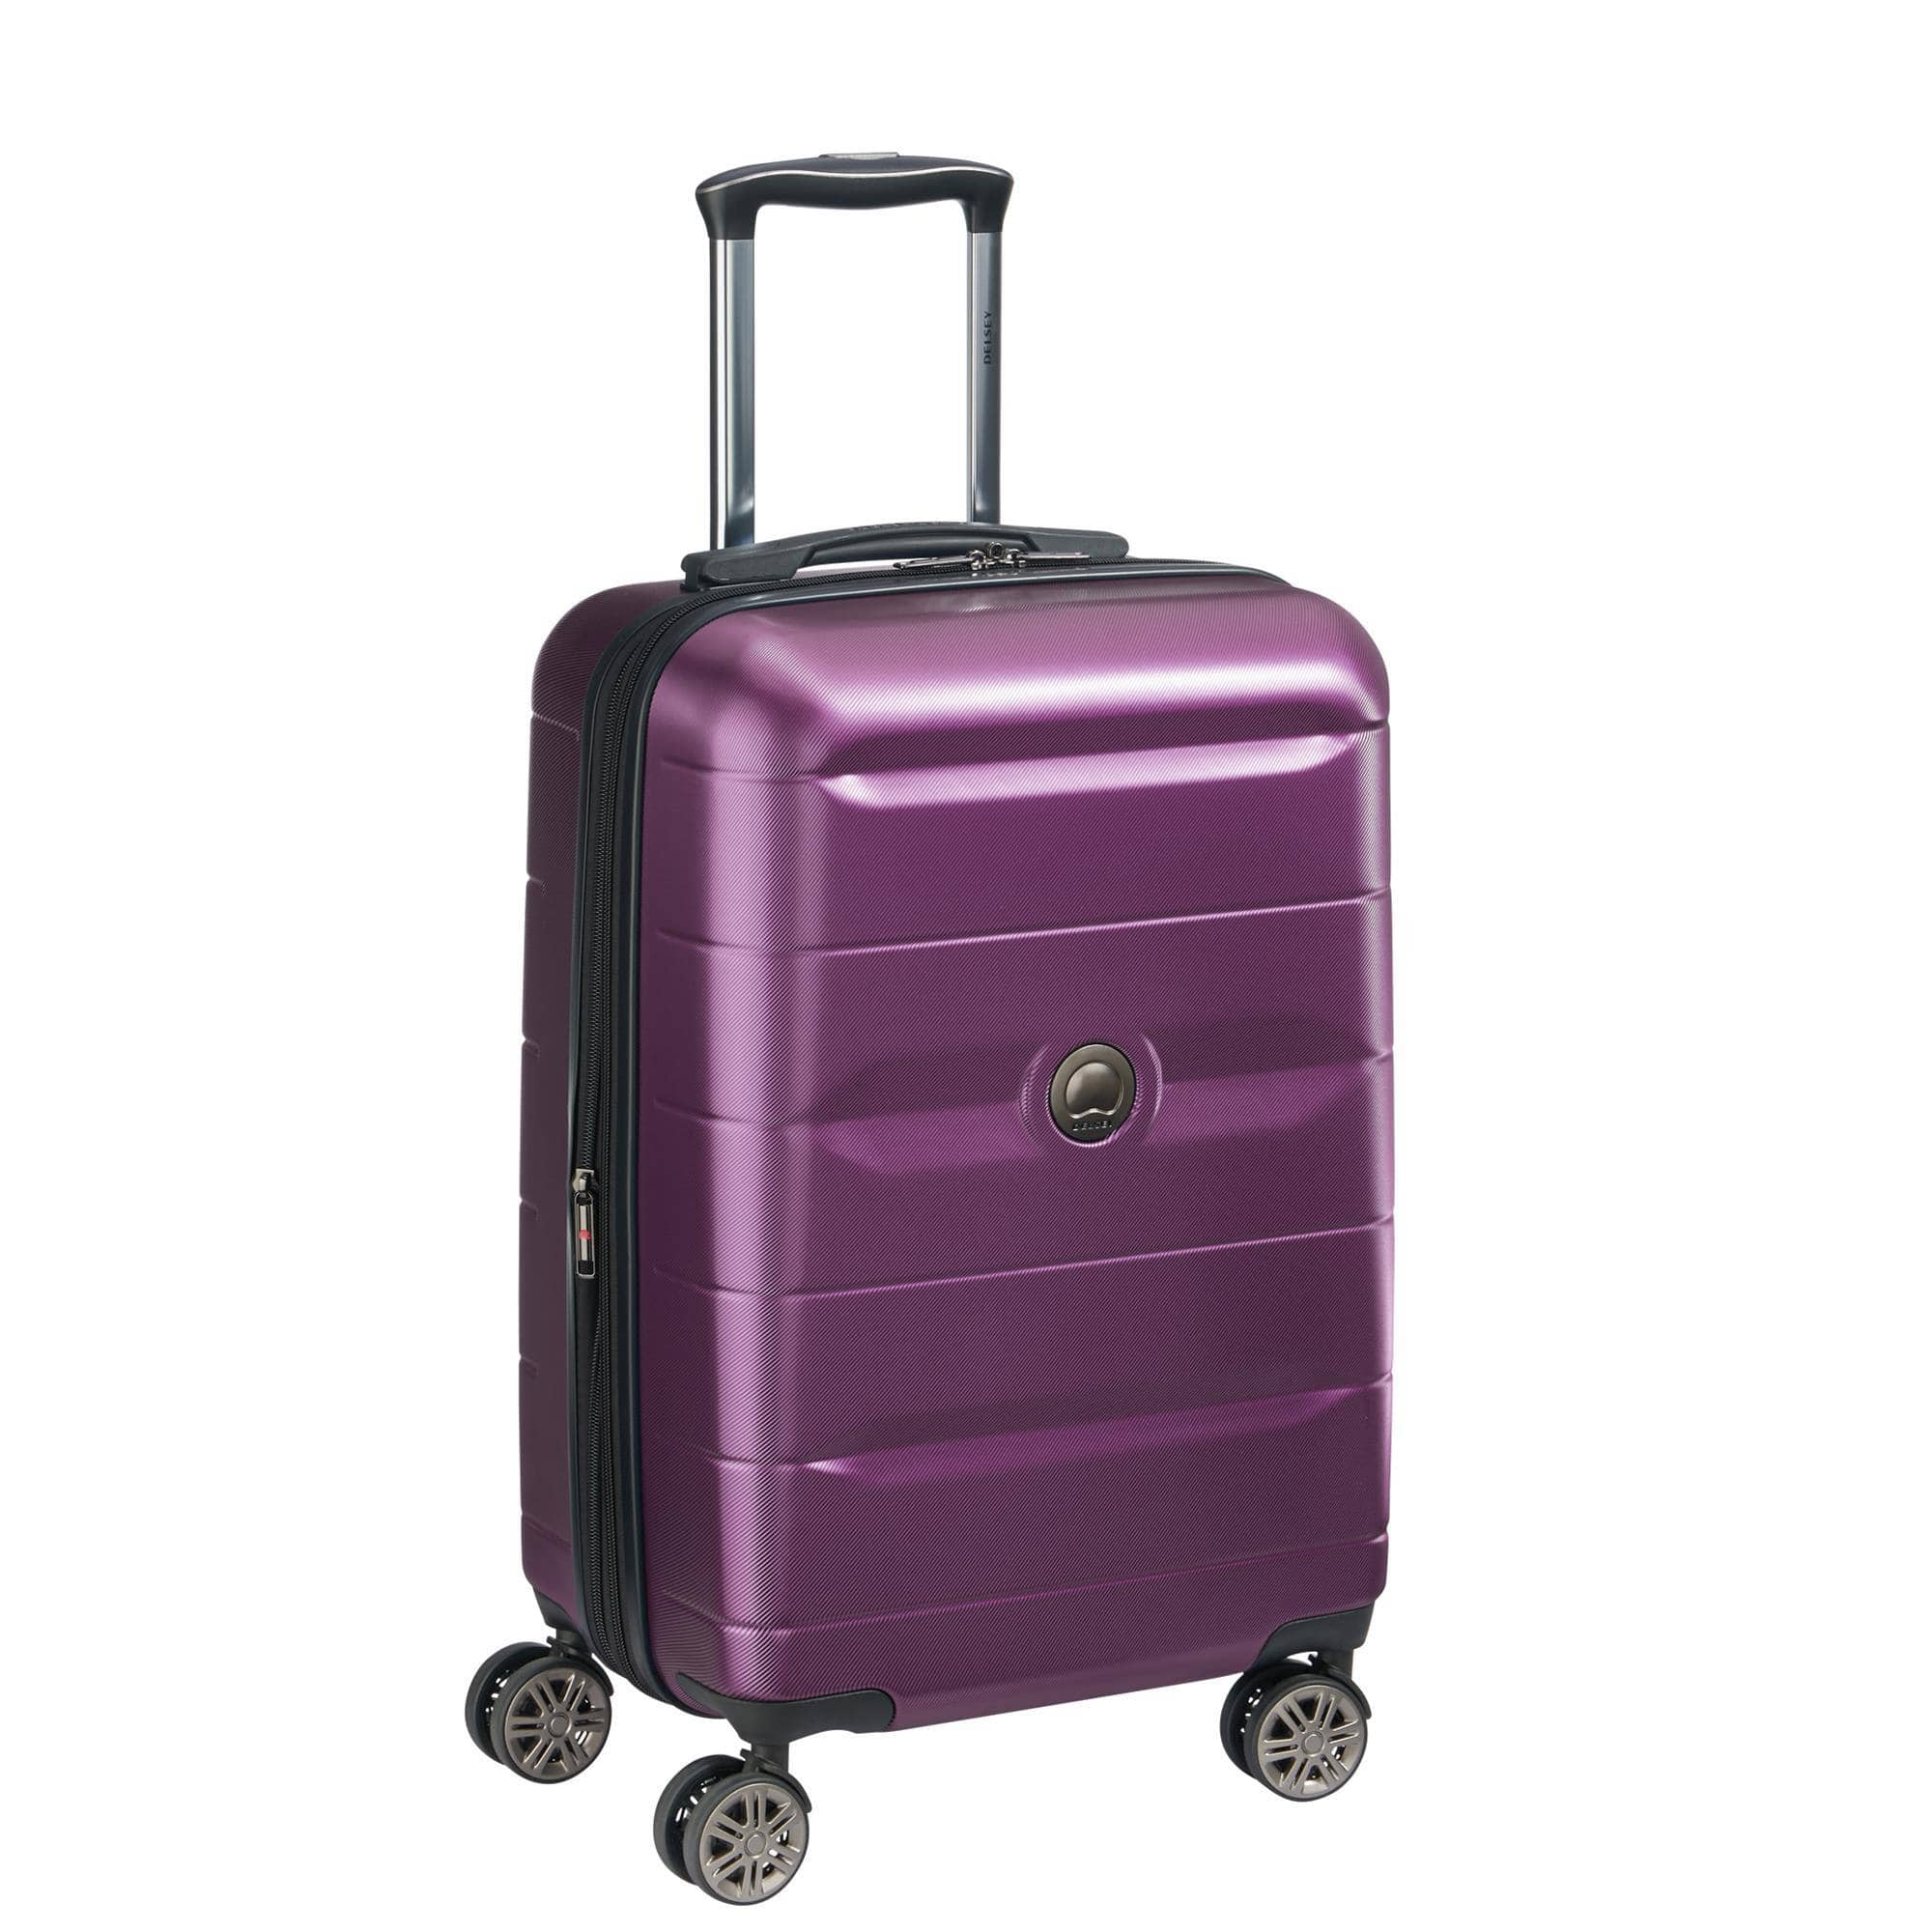 DELSEY Paris Comete 2.0 Expandable Rolling Carry On Luggage Suitcase, Purple $47.99 Shipped